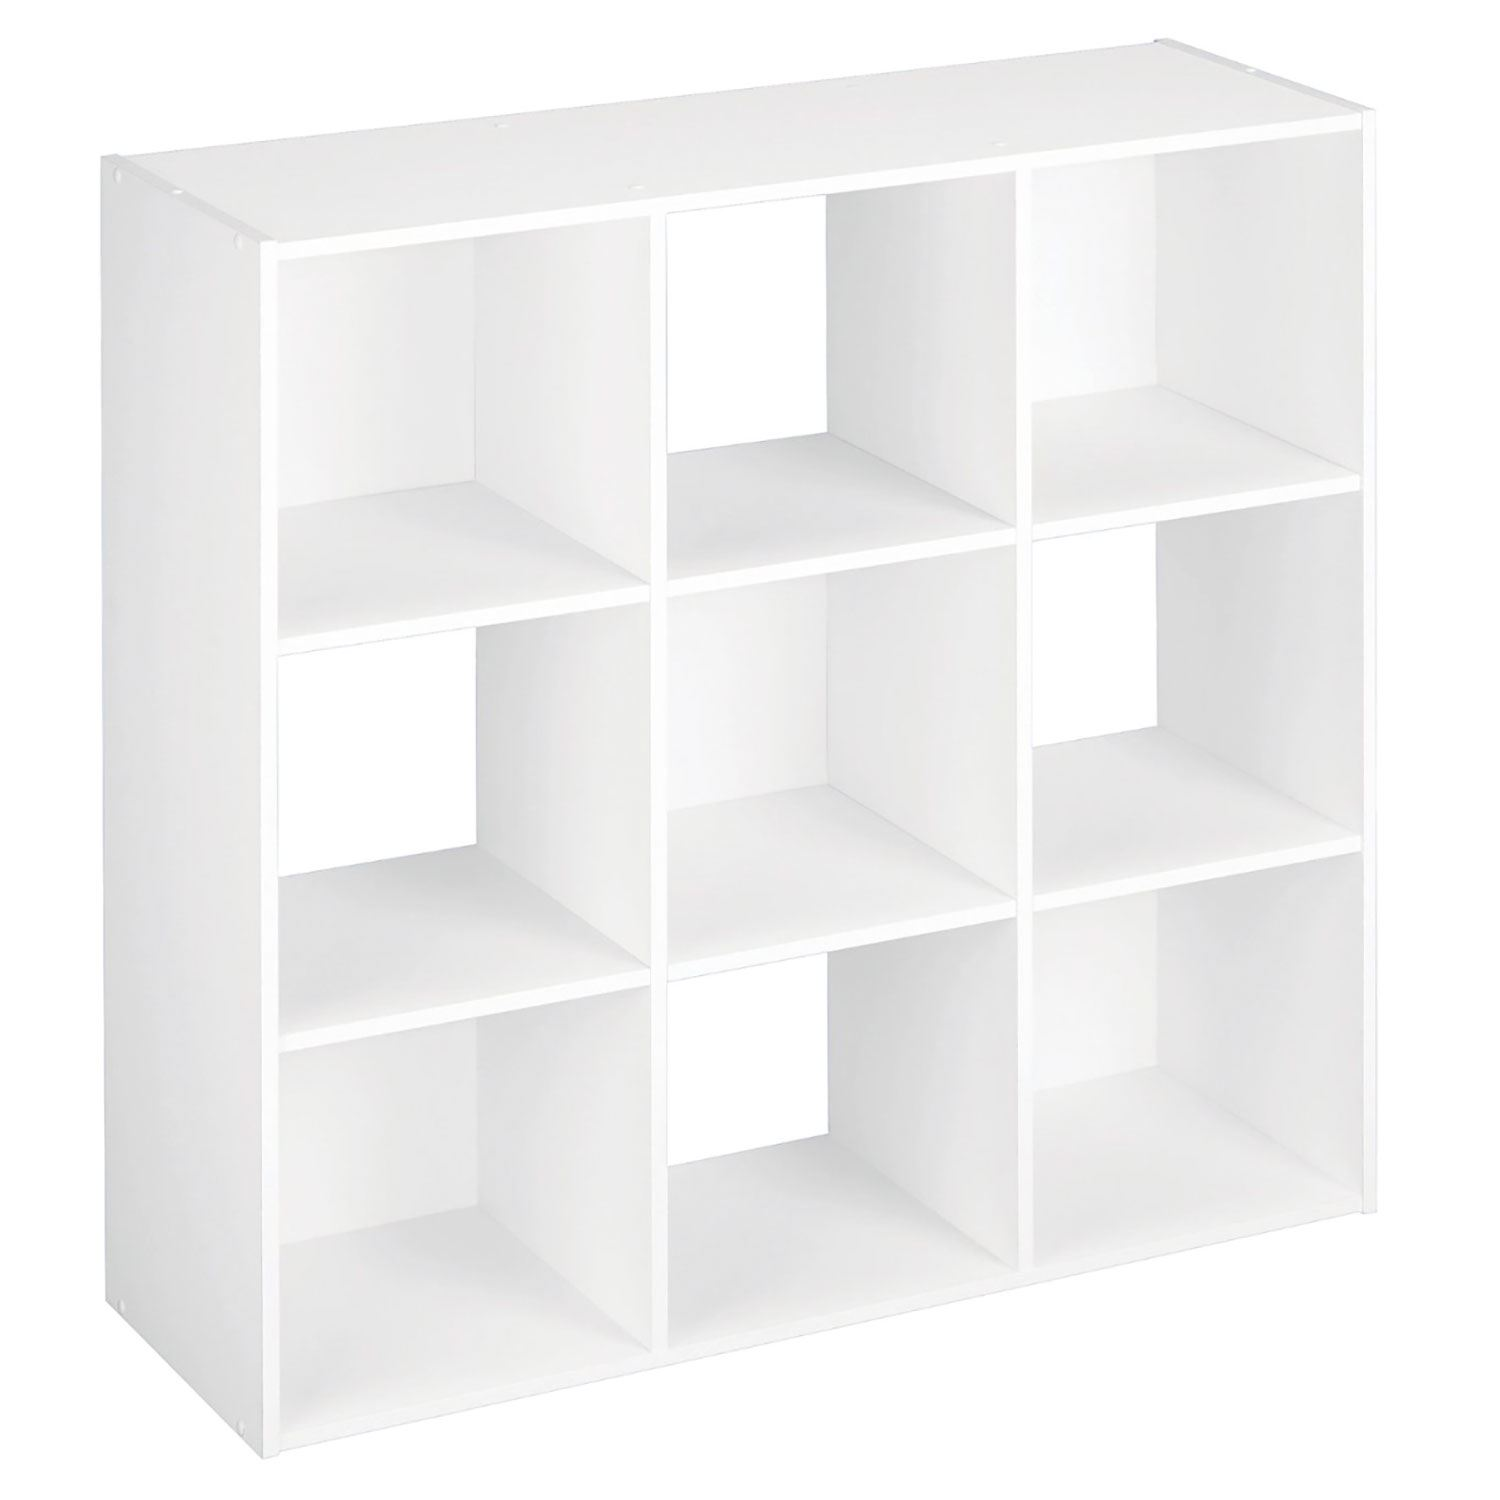 storage cube shelves 9 cube wooden bookcase shelving display shelves storage 26870